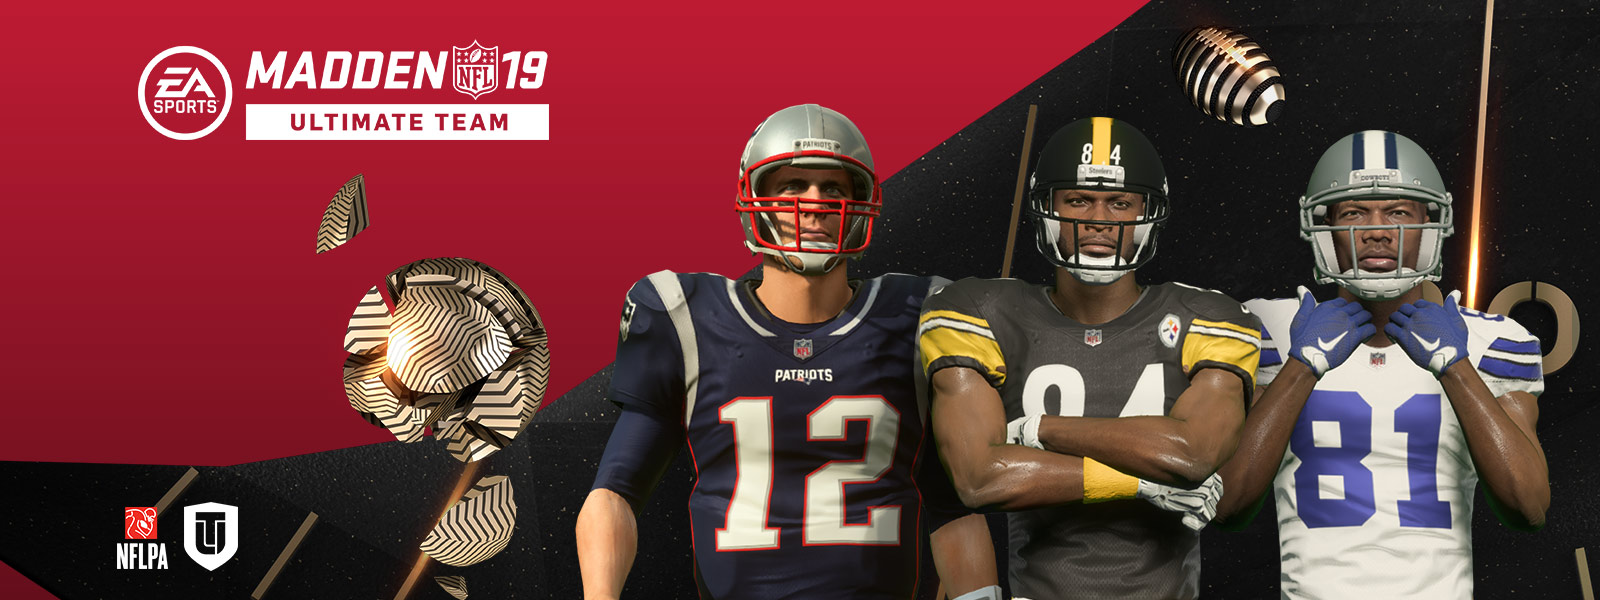 Madden NFL 19 Ultimate Team, Tom Brady, Antonio Brown 및 Terrell Owens의 앞모습